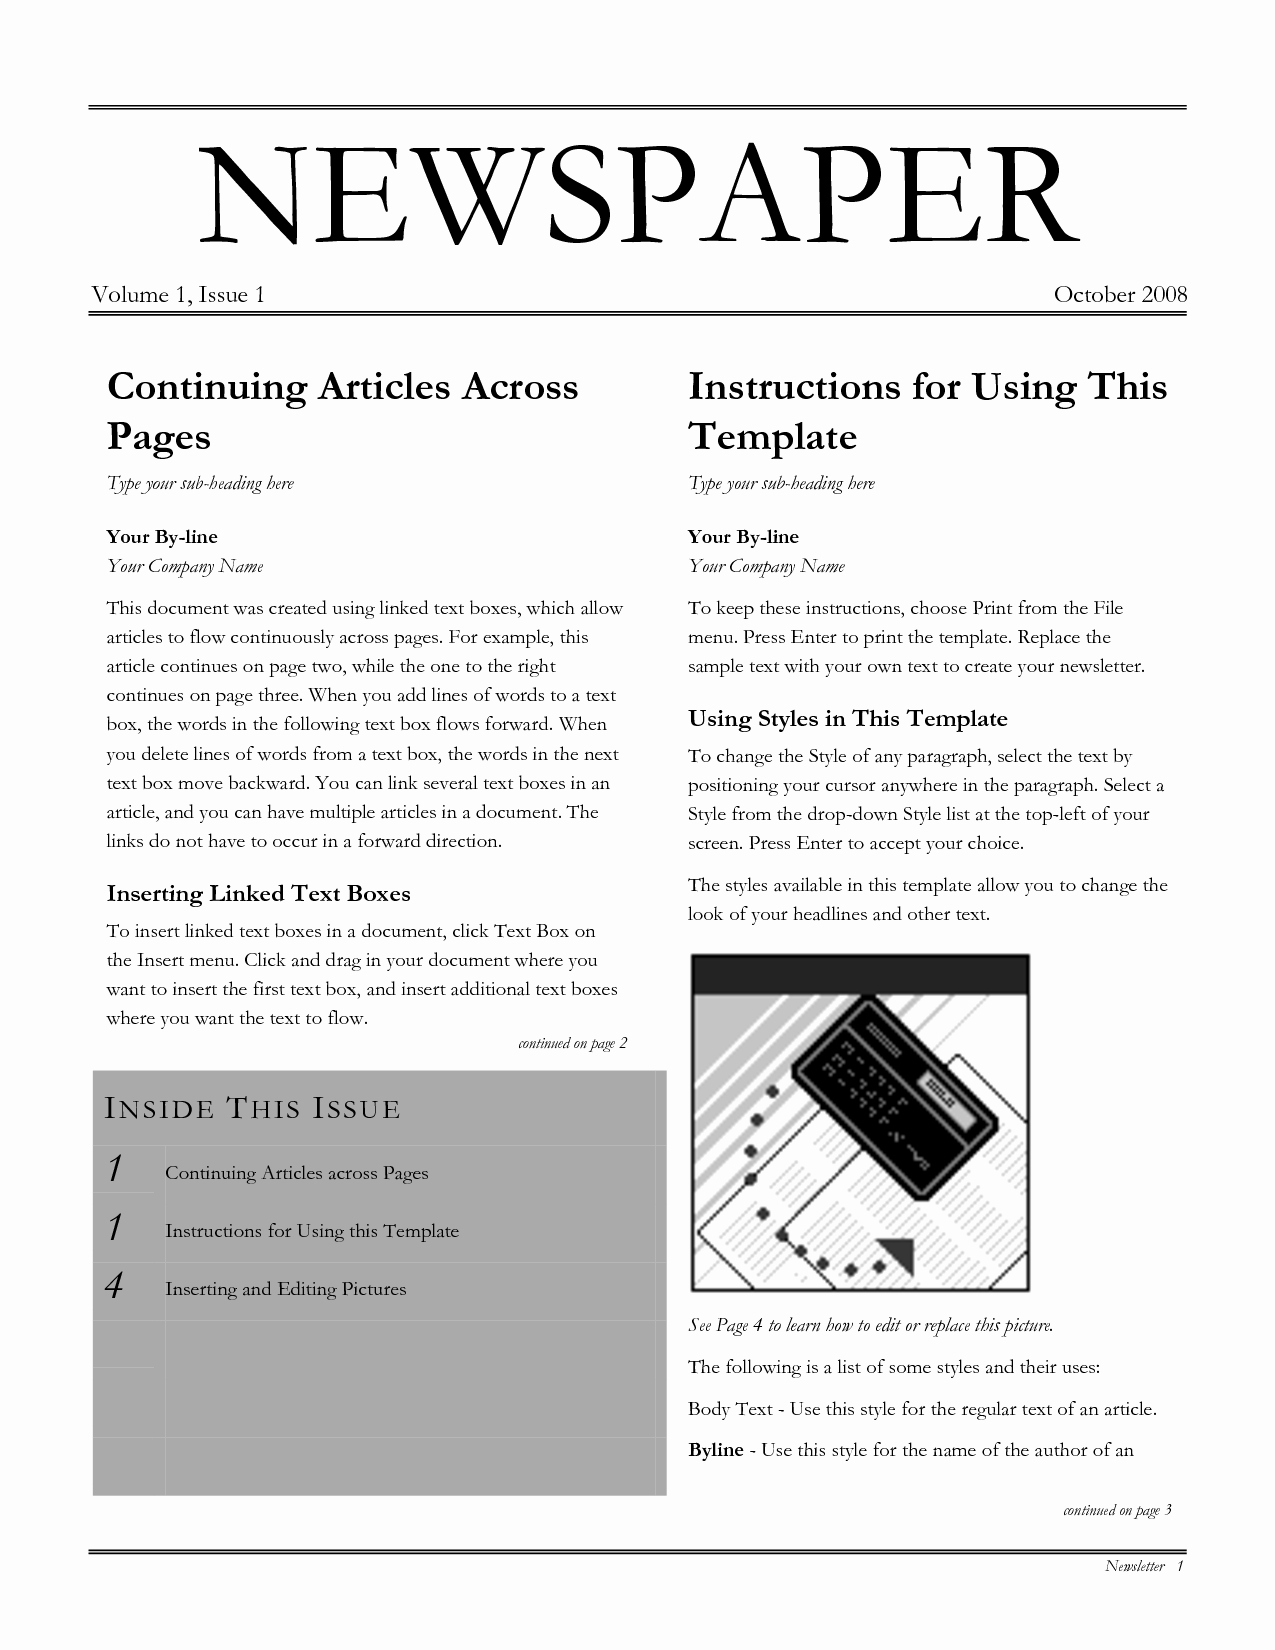 Blank Newspaper Template Microsoft Word Fresh Best S Of Blank Newspaper Template for Word Blank